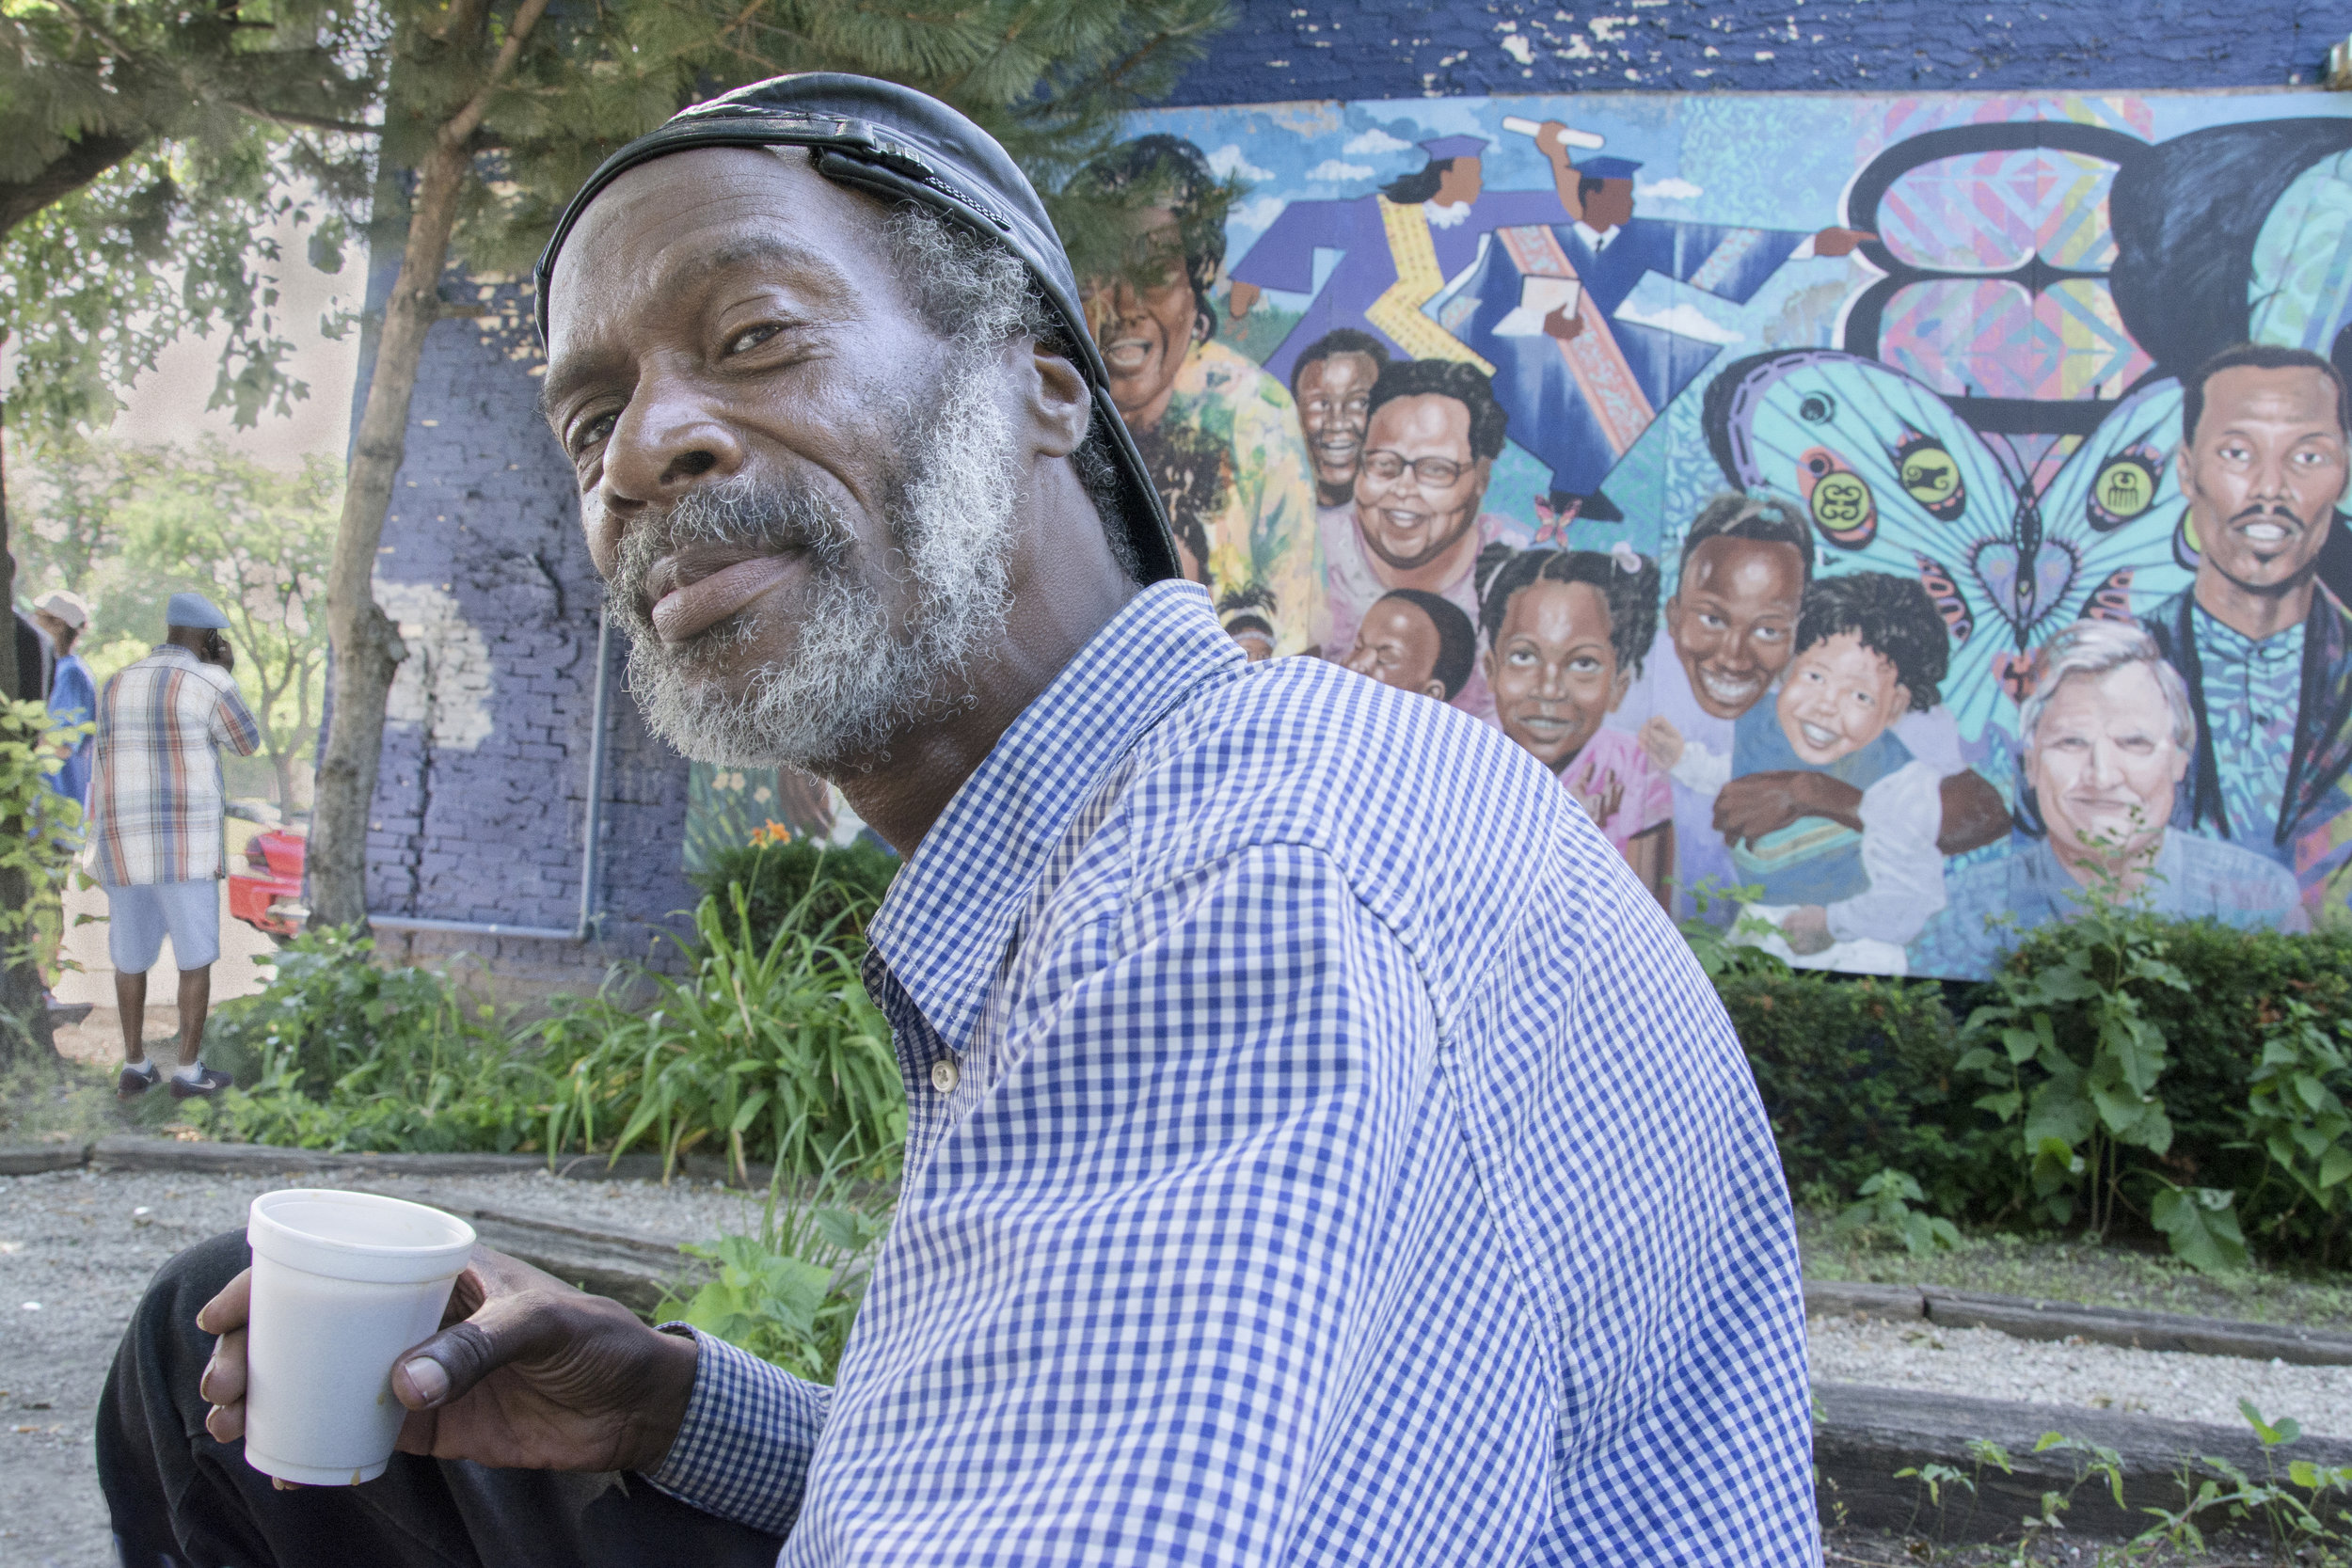 """Most mornings, Troy visits this little neighborhood garden and drinks his coffee. He said, """"That mural up there is a tribute to the two women who were murdered in this neighborhood 30 years ago. The others pictured are people who helped improve our neighborhoods."""" Milwaukee's violent crime rate has been among the highest among large cities. In 2014, there were 8,864 violent crimes, according to the FBI figures."""